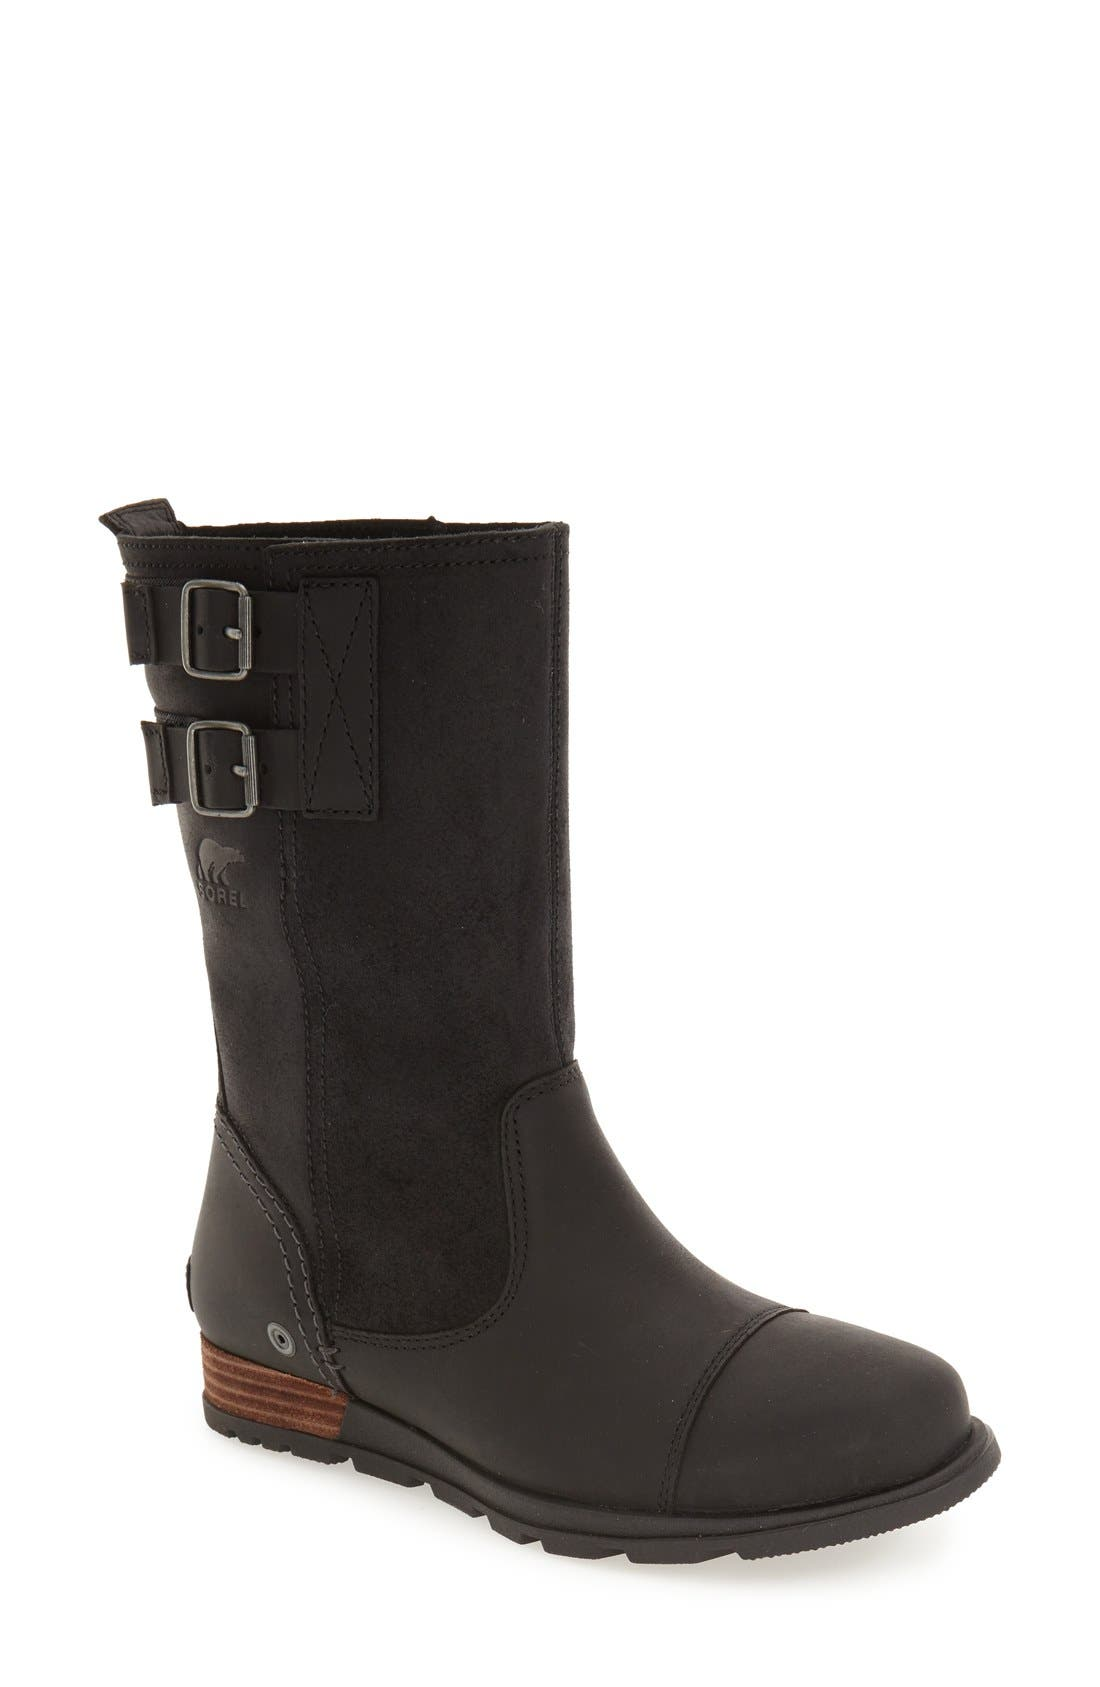 Alternate Image 1 Selected - SOREL 'Major' Boot (Women)